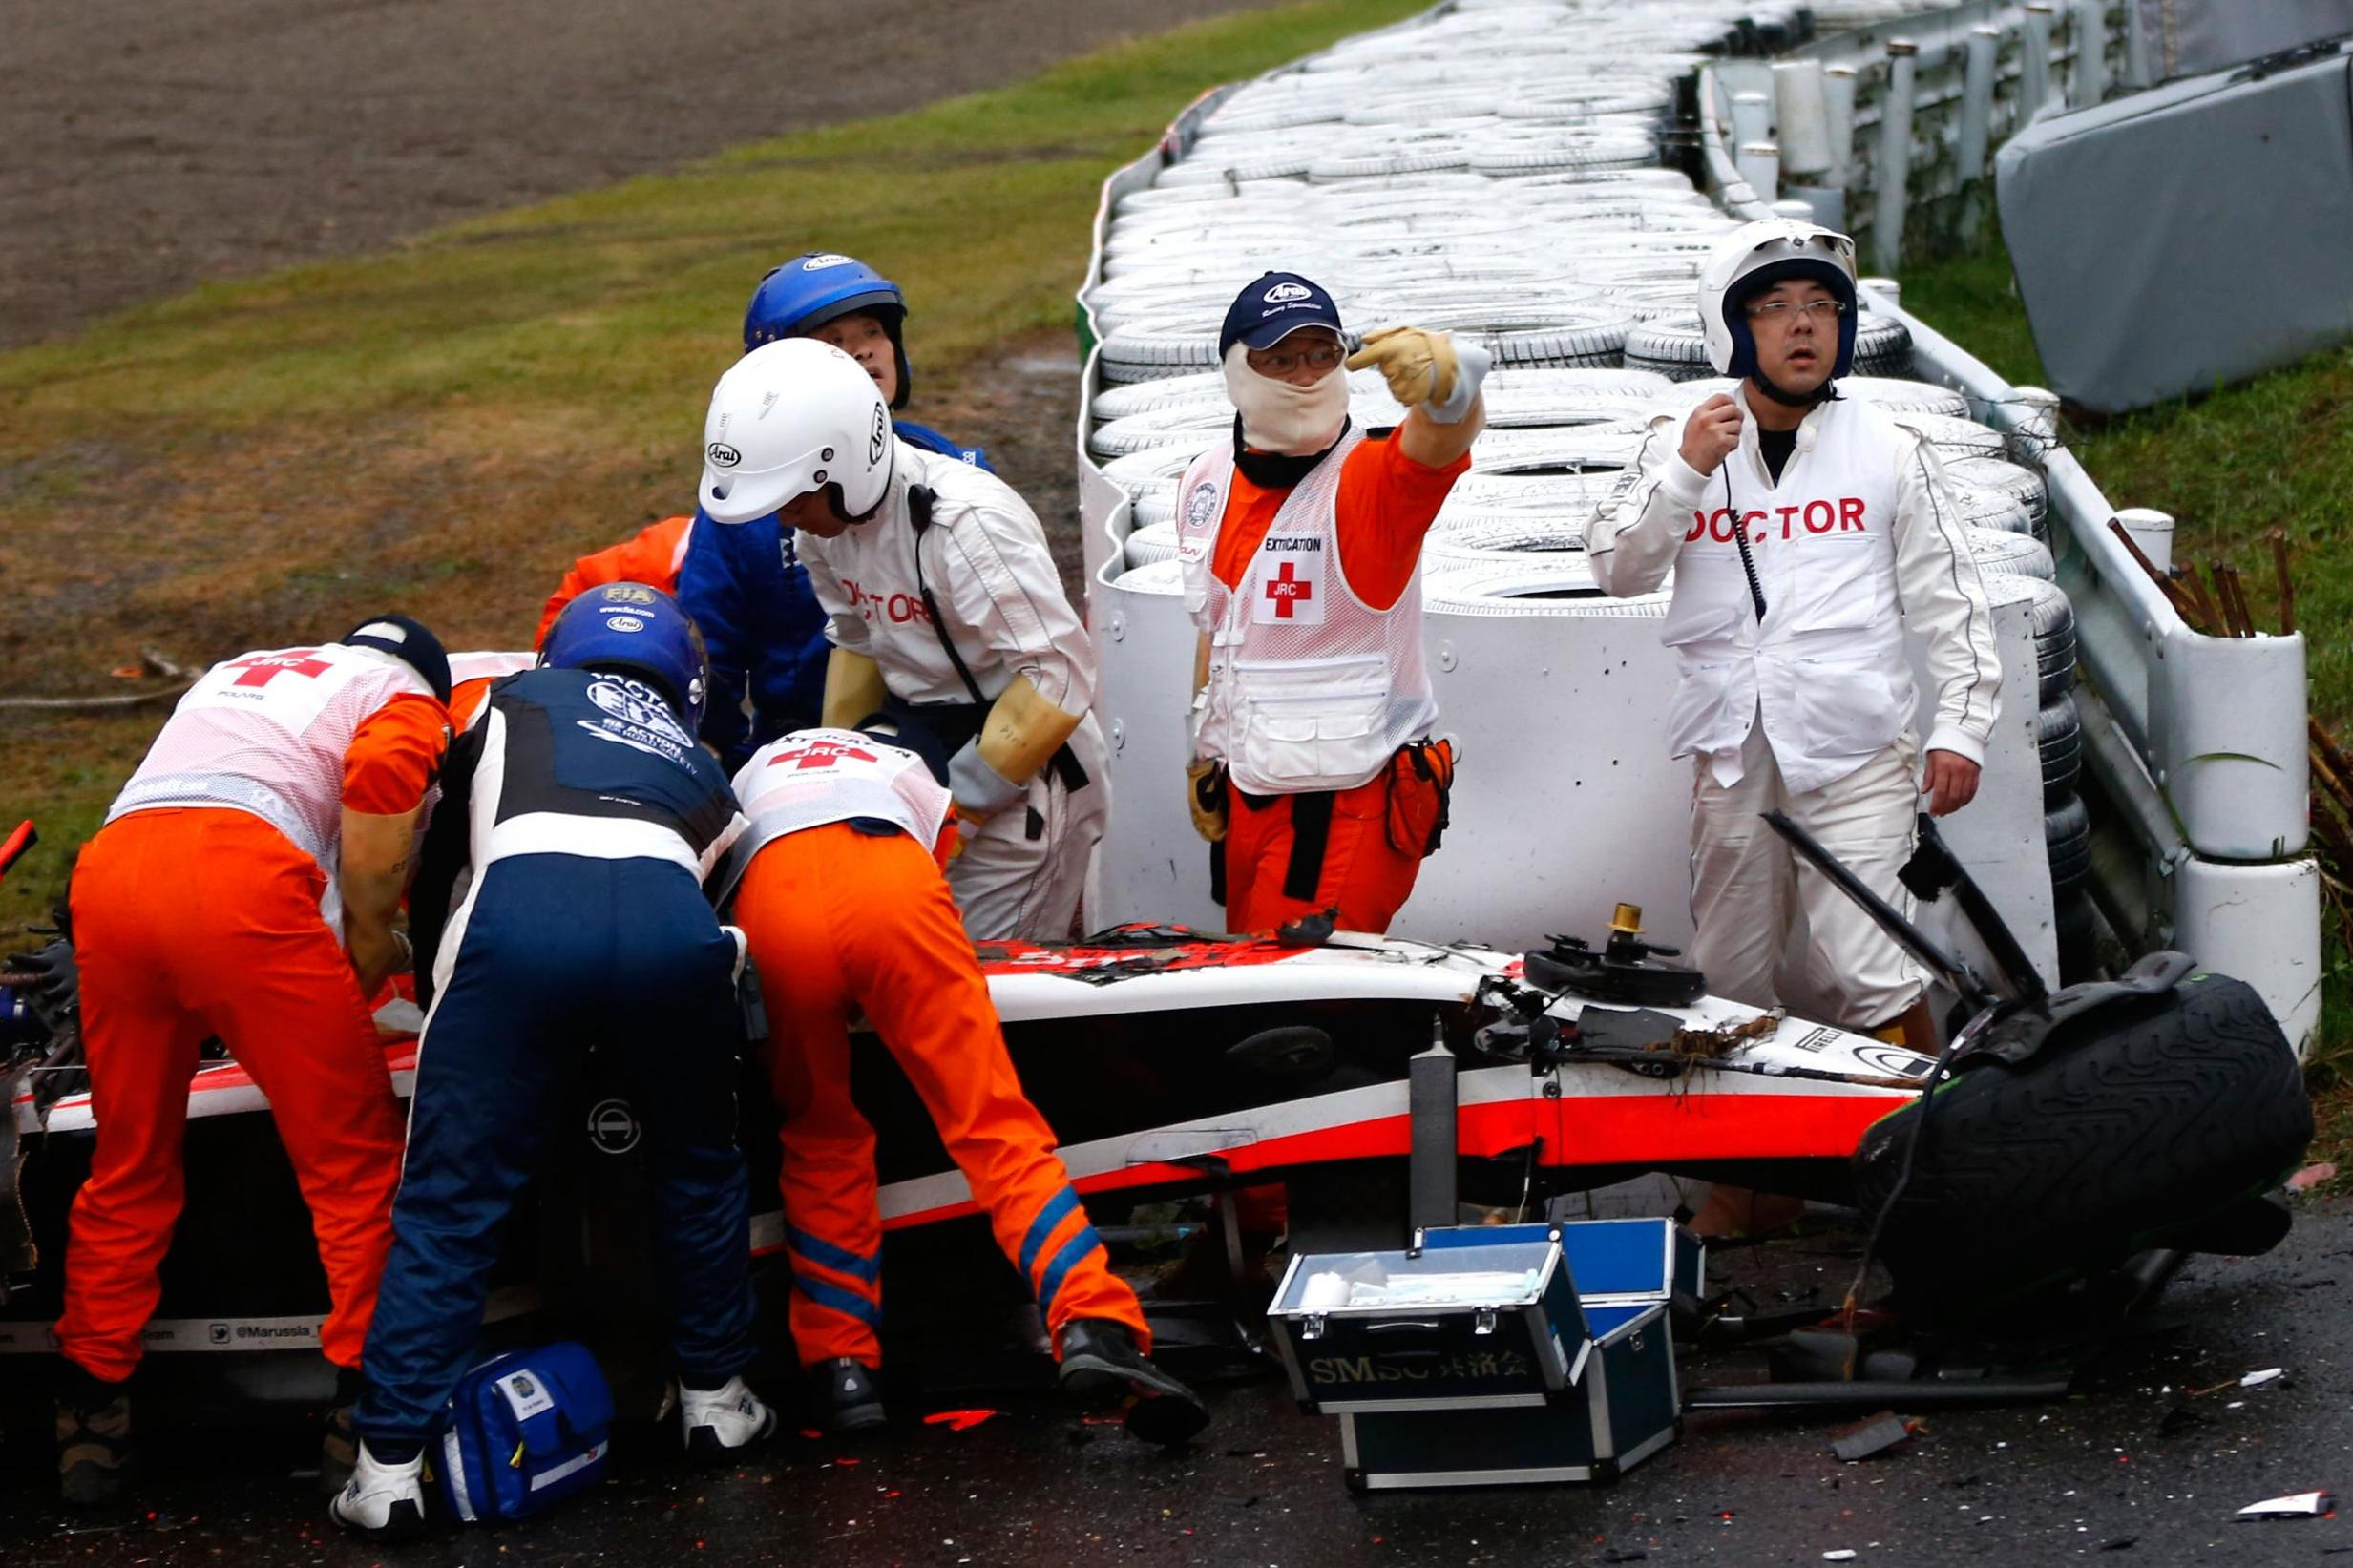 Bianchi receives medical treatment after crashing during the Japanese Formula One Grand Prix in 2014